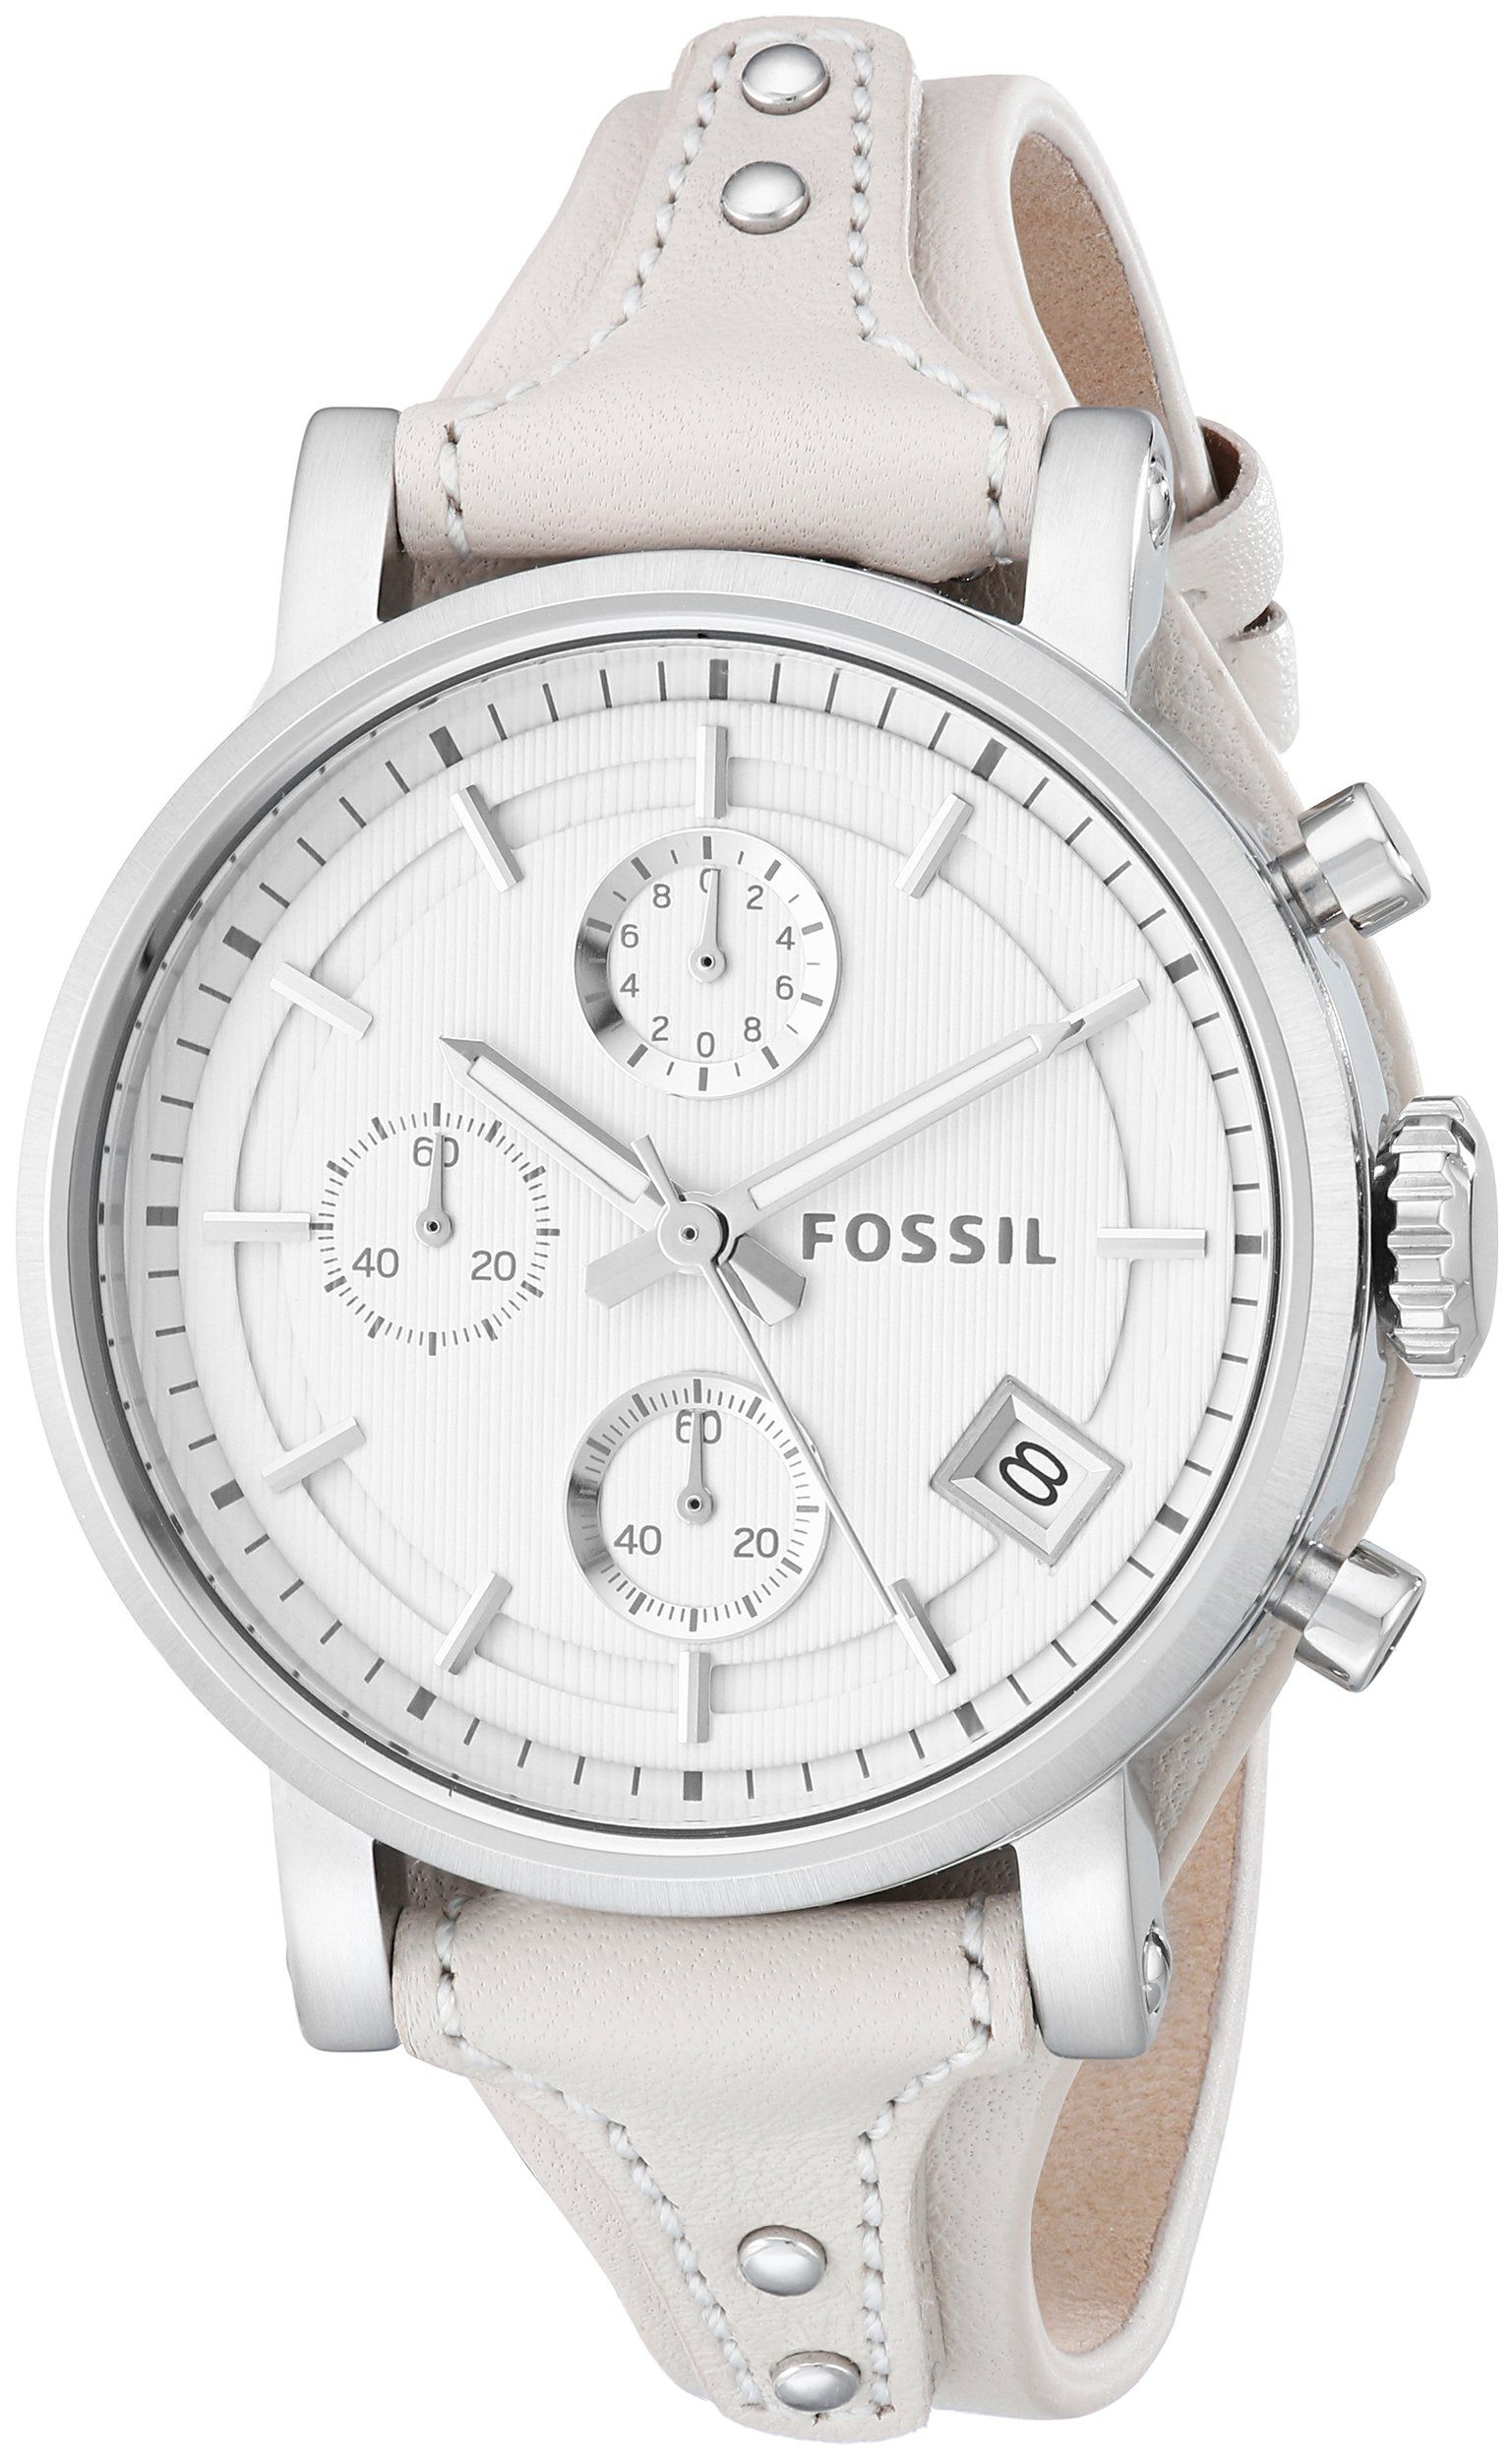 24aa6c861e7 Fossil Women s ES3811 Original Boyfriend Stainless Steel Watch with White  Leather Band